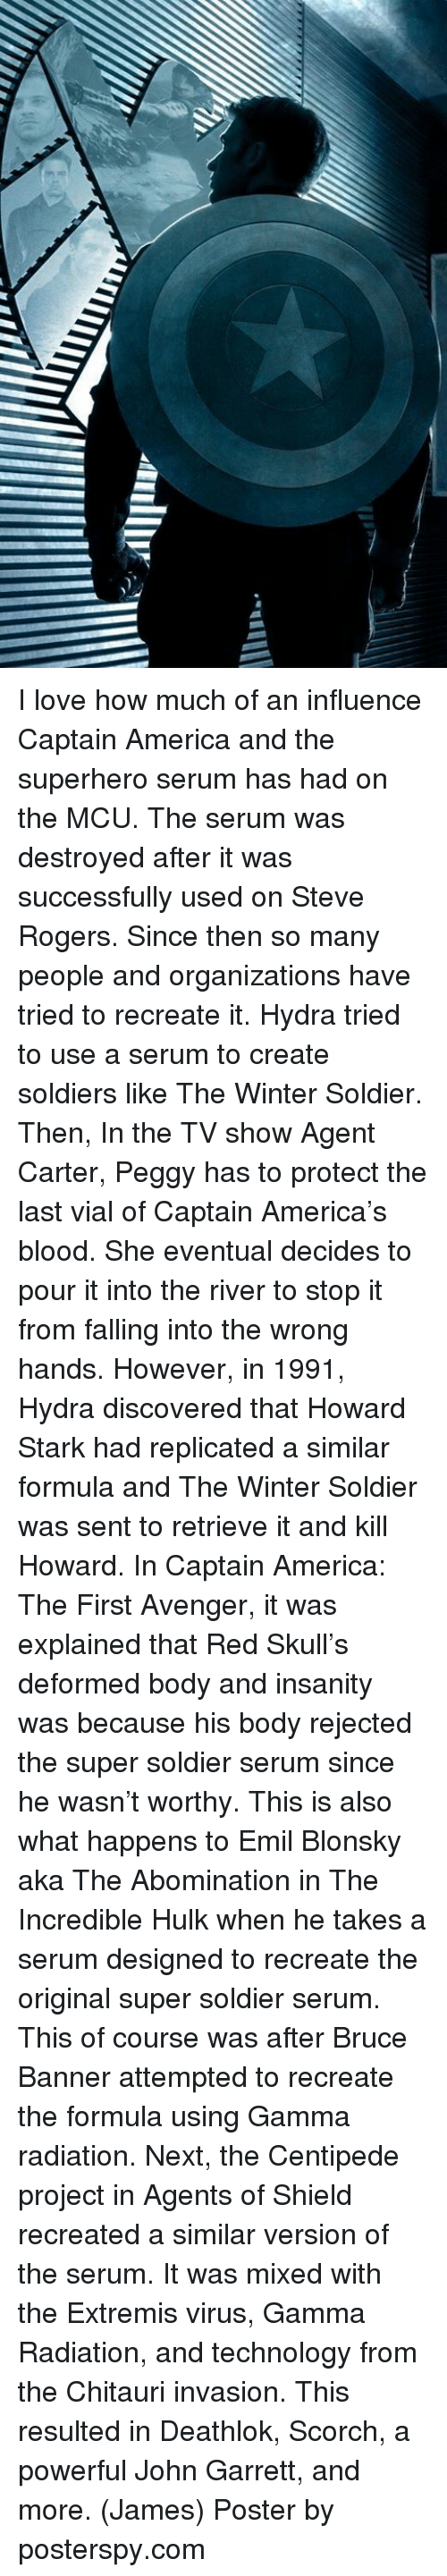 posterized: I love how much of an influence Captain America and the superhero serum has had on the MCU. The serum was destroyed after it was successfully used on Steve Rogers. Since then so many people and organizations have tried to recreate it.  Hydra tried to use a serum to create soldiers like The Winter Soldier. Then, In the TV show Agent Carter, Peggy has to protect the last vial of Captain America's blood. She eventual decides to pour it into the river to stop it from falling into the wrong hands. However, in 1991, Hydra discovered that Howard Stark had replicated a similar formula and The Winter Soldier was sent to retrieve it and kill Howard.   In Captain America: The First Avenger, it was explained that Red Skull's deformed body and insanity was because his body rejected the super soldier serum since he wasn't worthy. This is also what happens to Emil Blonsky aka The Abomination in The Incredible Hulk when he takes a serum designed to recreate the original super soldier serum. This of course was after Bruce Banner attempted to recreate the formula using Gamma radiation.   Next, the Centipede project in Agents of Shield recreated a similar version of the serum. It was mixed with the Extremis virus, Gamma Radiation, and technology from the Chitauri invasion. This resulted in Deathlok, Scorch, a powerful John Garrett, and more.  (James)  Poster by posterspy.com